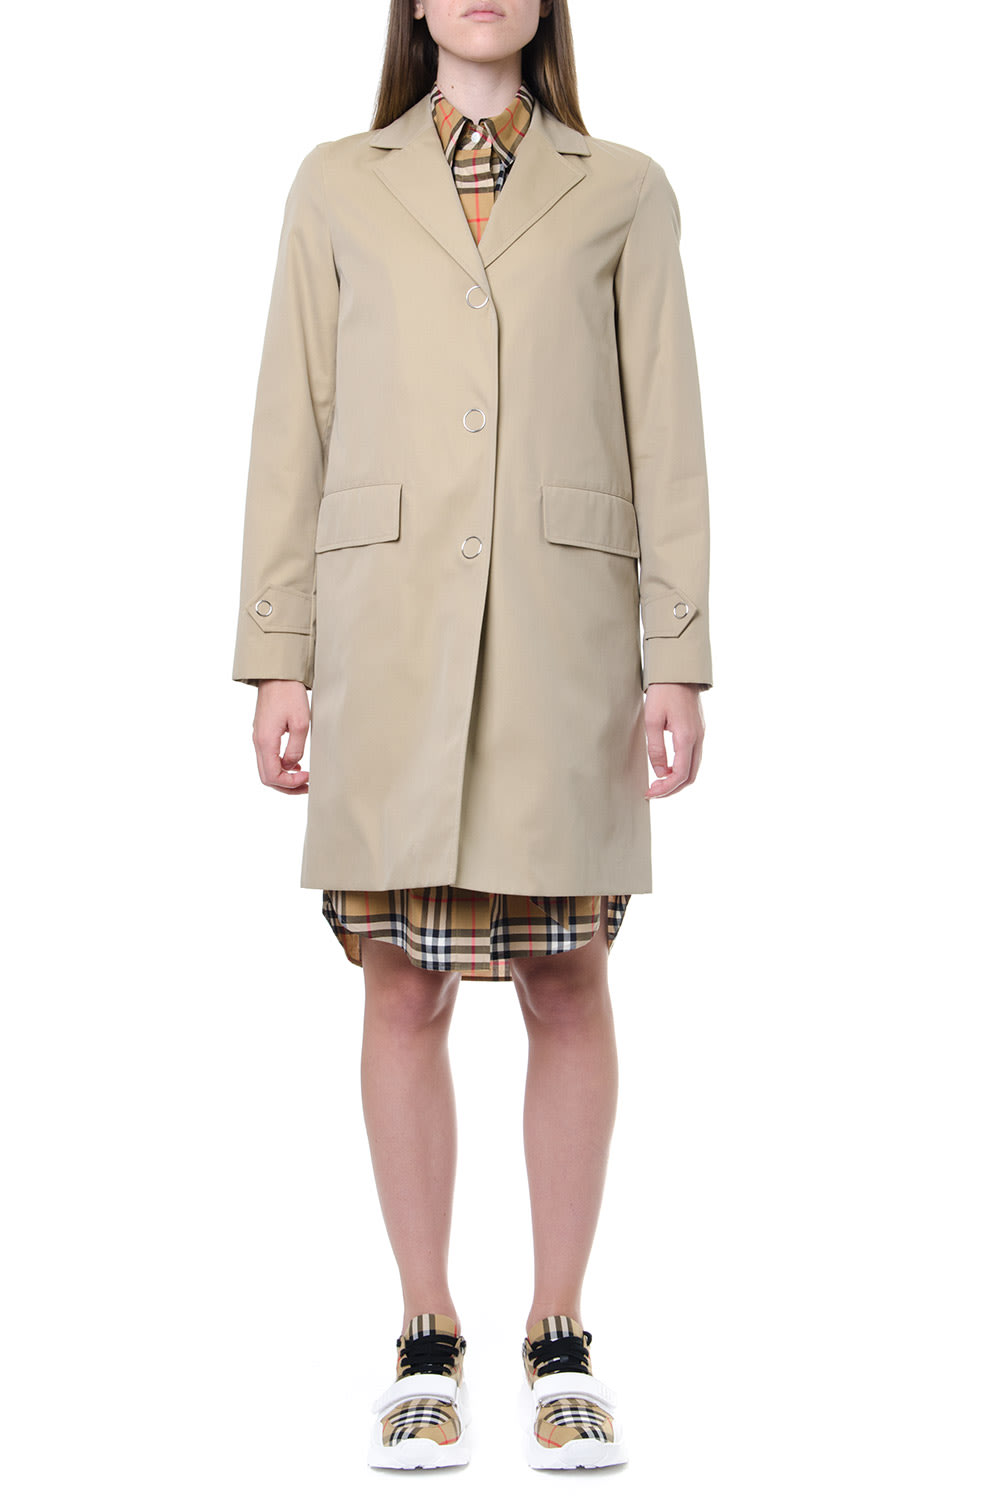 Burberry Honey Cotton Single Breasted Trench Coat